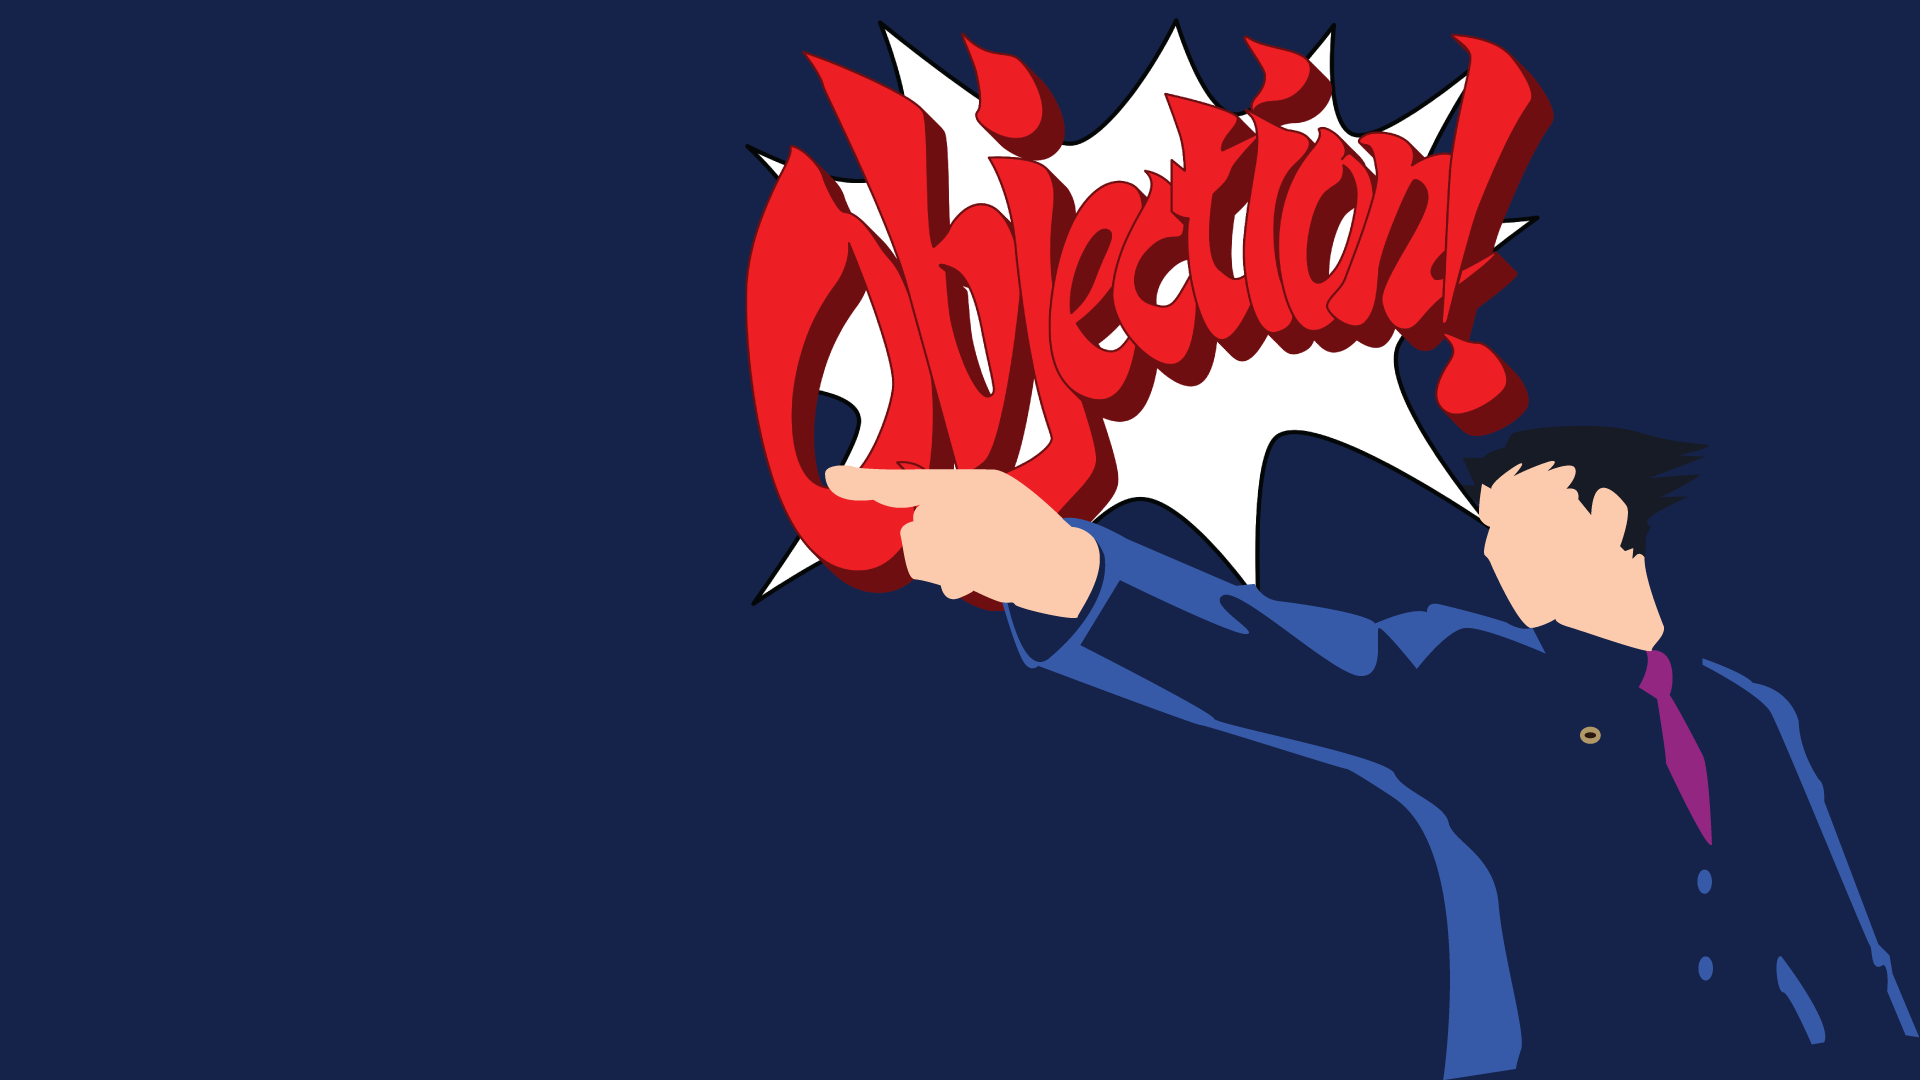 Phoenix Wright Ace Attorney Hd Wallpaper Background Image 1920x1080 Id 312517 Wallpaper Abyss